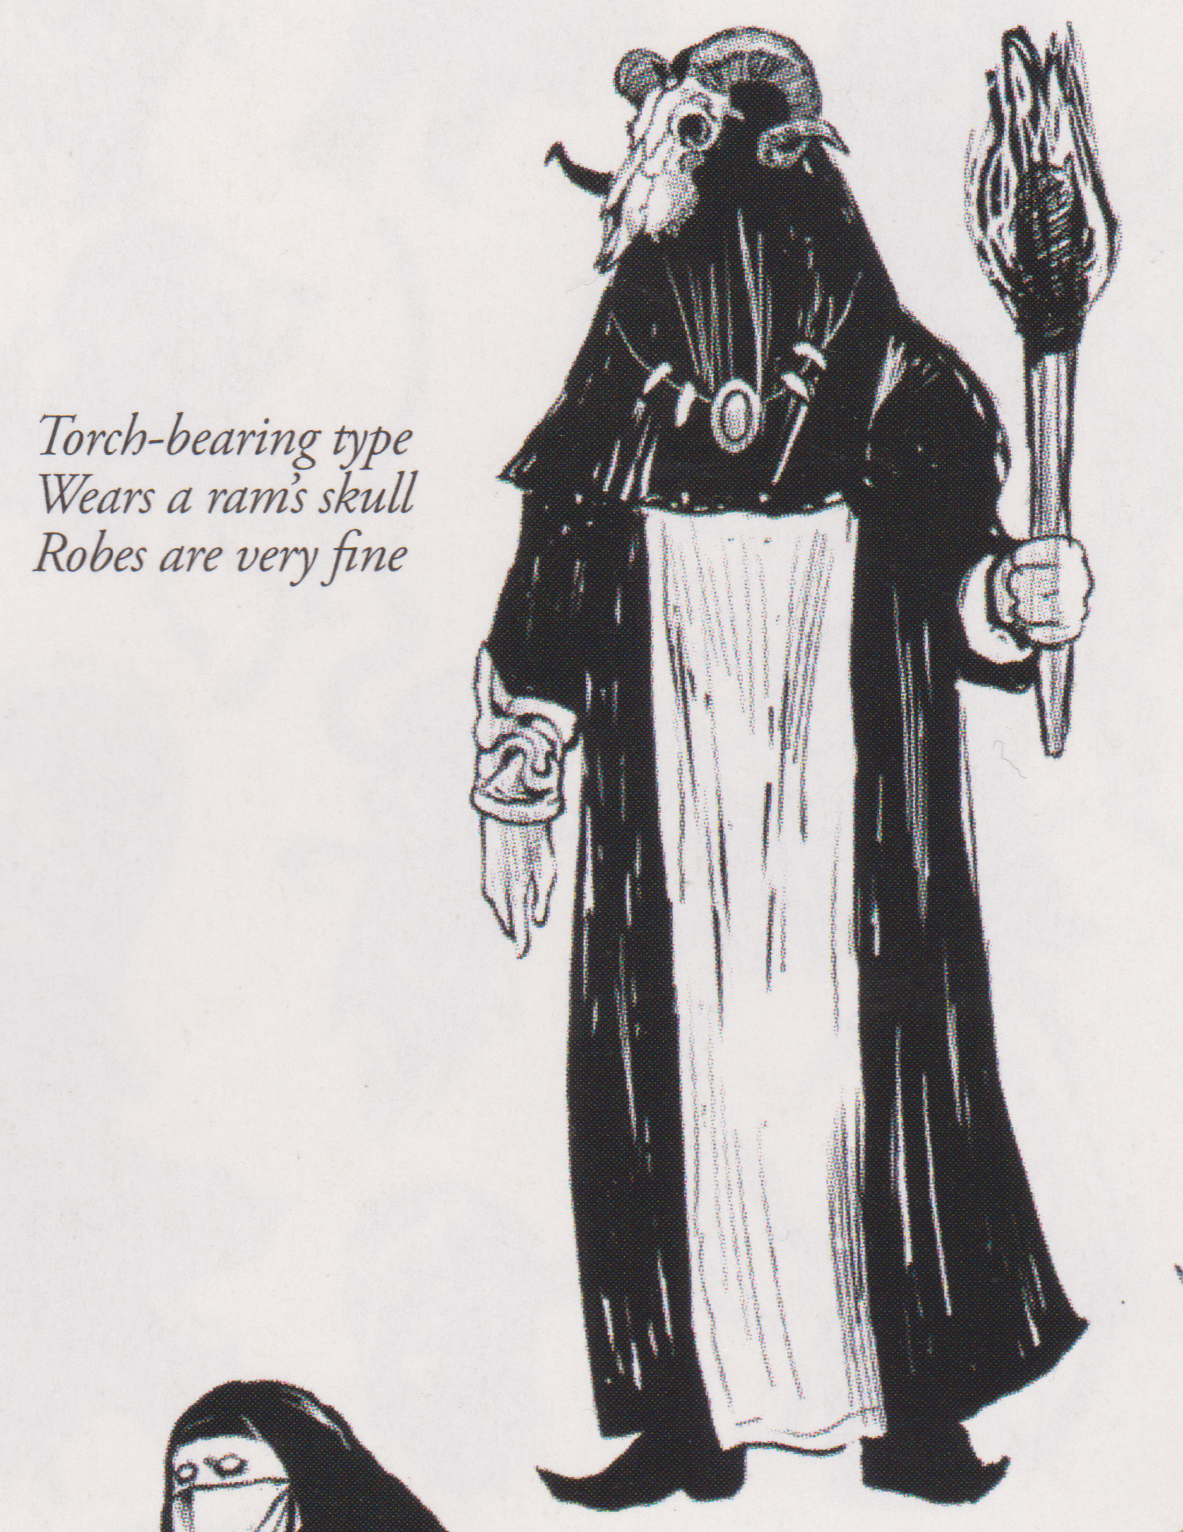 File:Rejected Ganado - Torch-bearer zealot.png